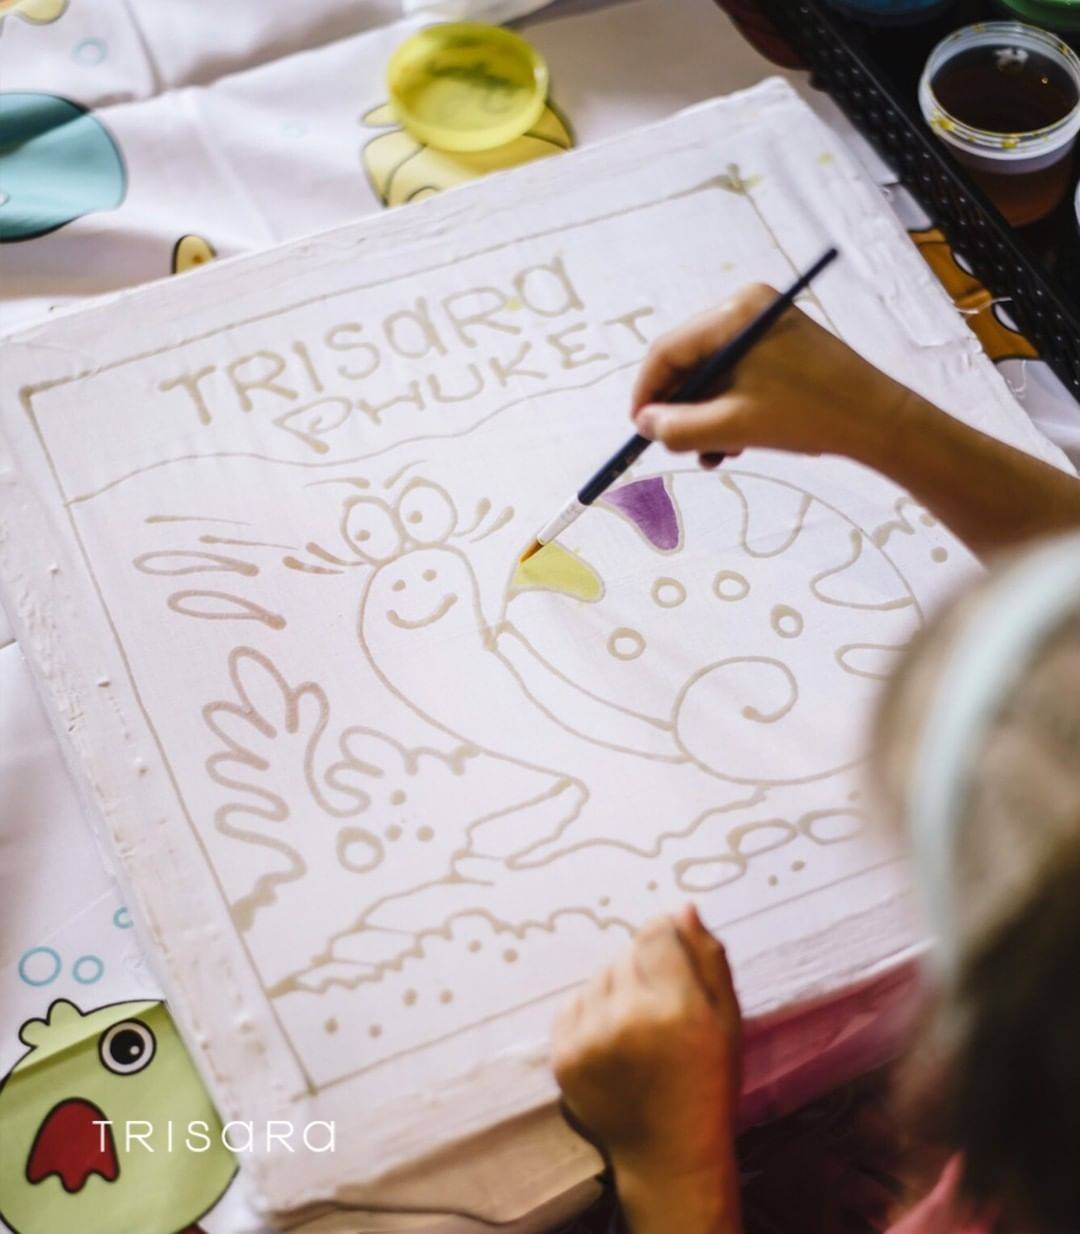 Plenty to do for the children at the Trisara Resort on Phuket